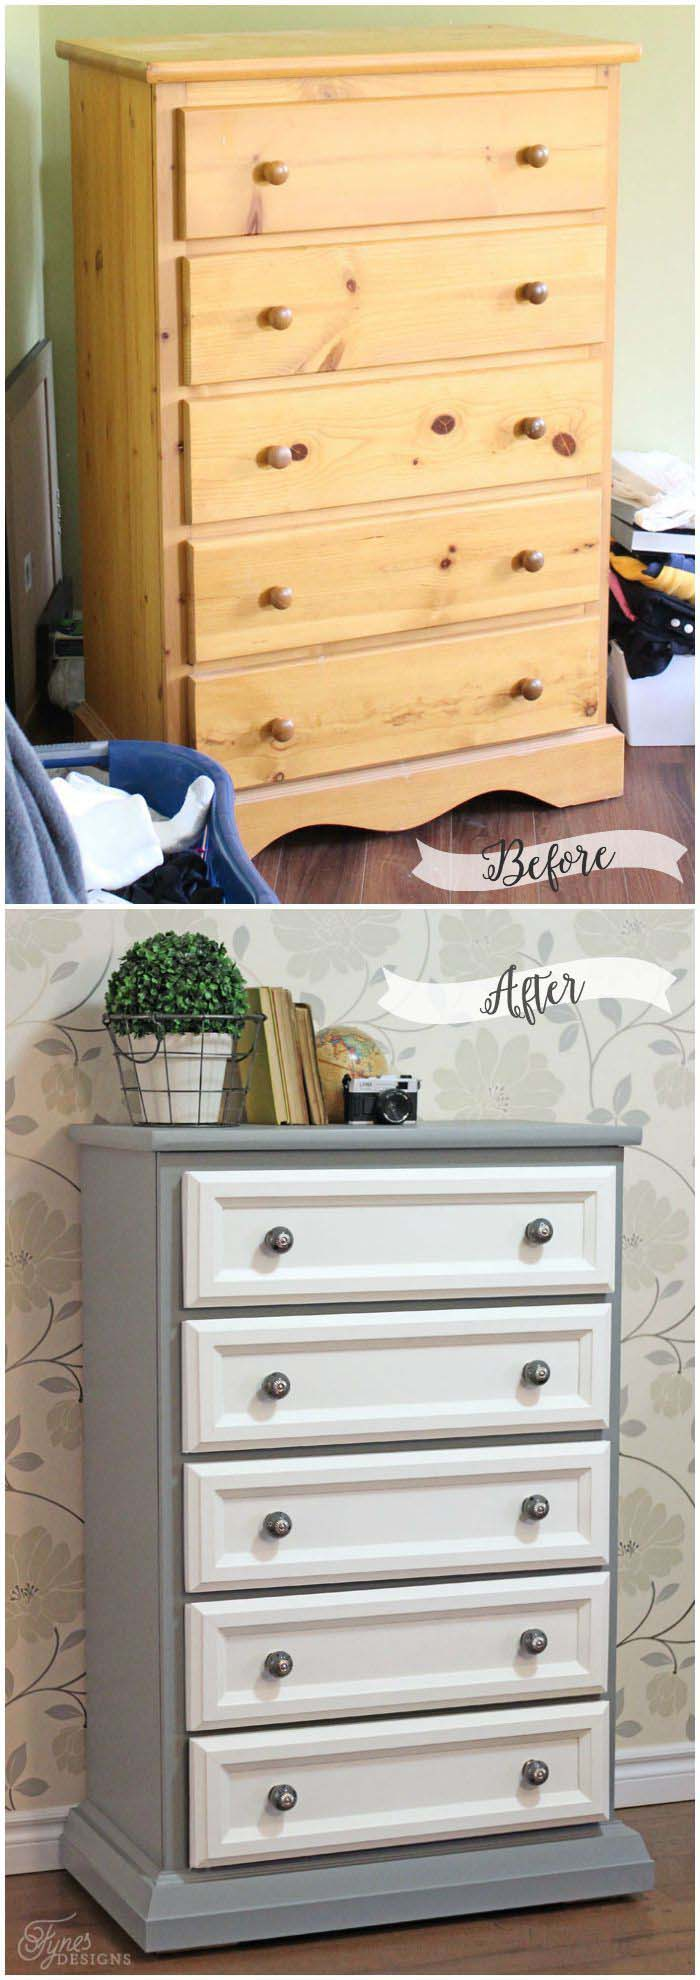 Tall Dresser Makeover #furniture #makeover #diy #decorhomeideas